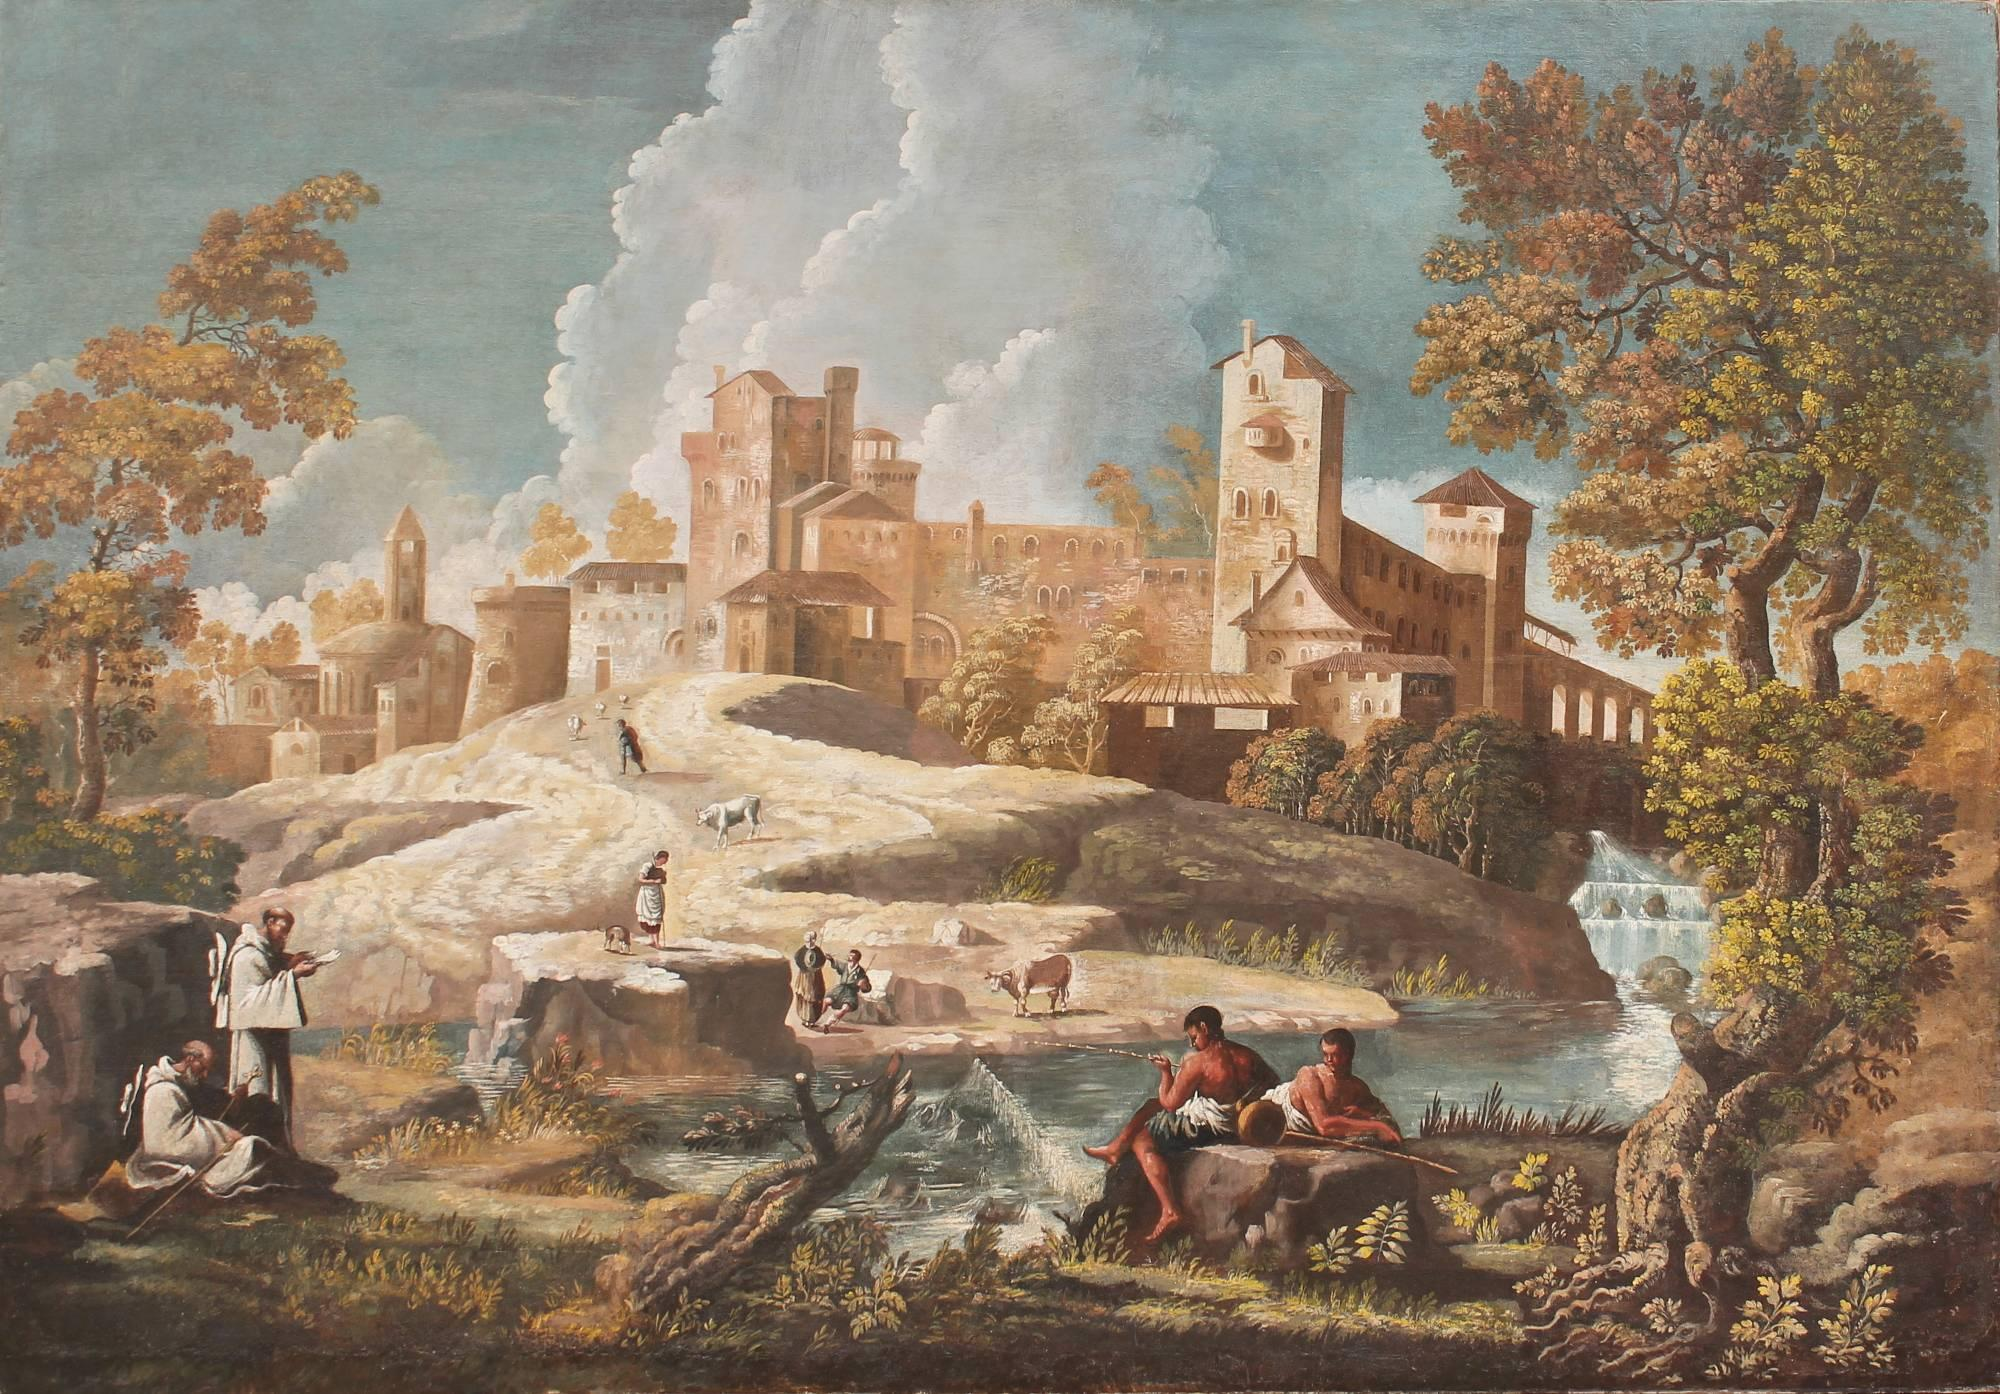 Monumental 17th Century Landscape Painting with Figures in an Arcadian setting